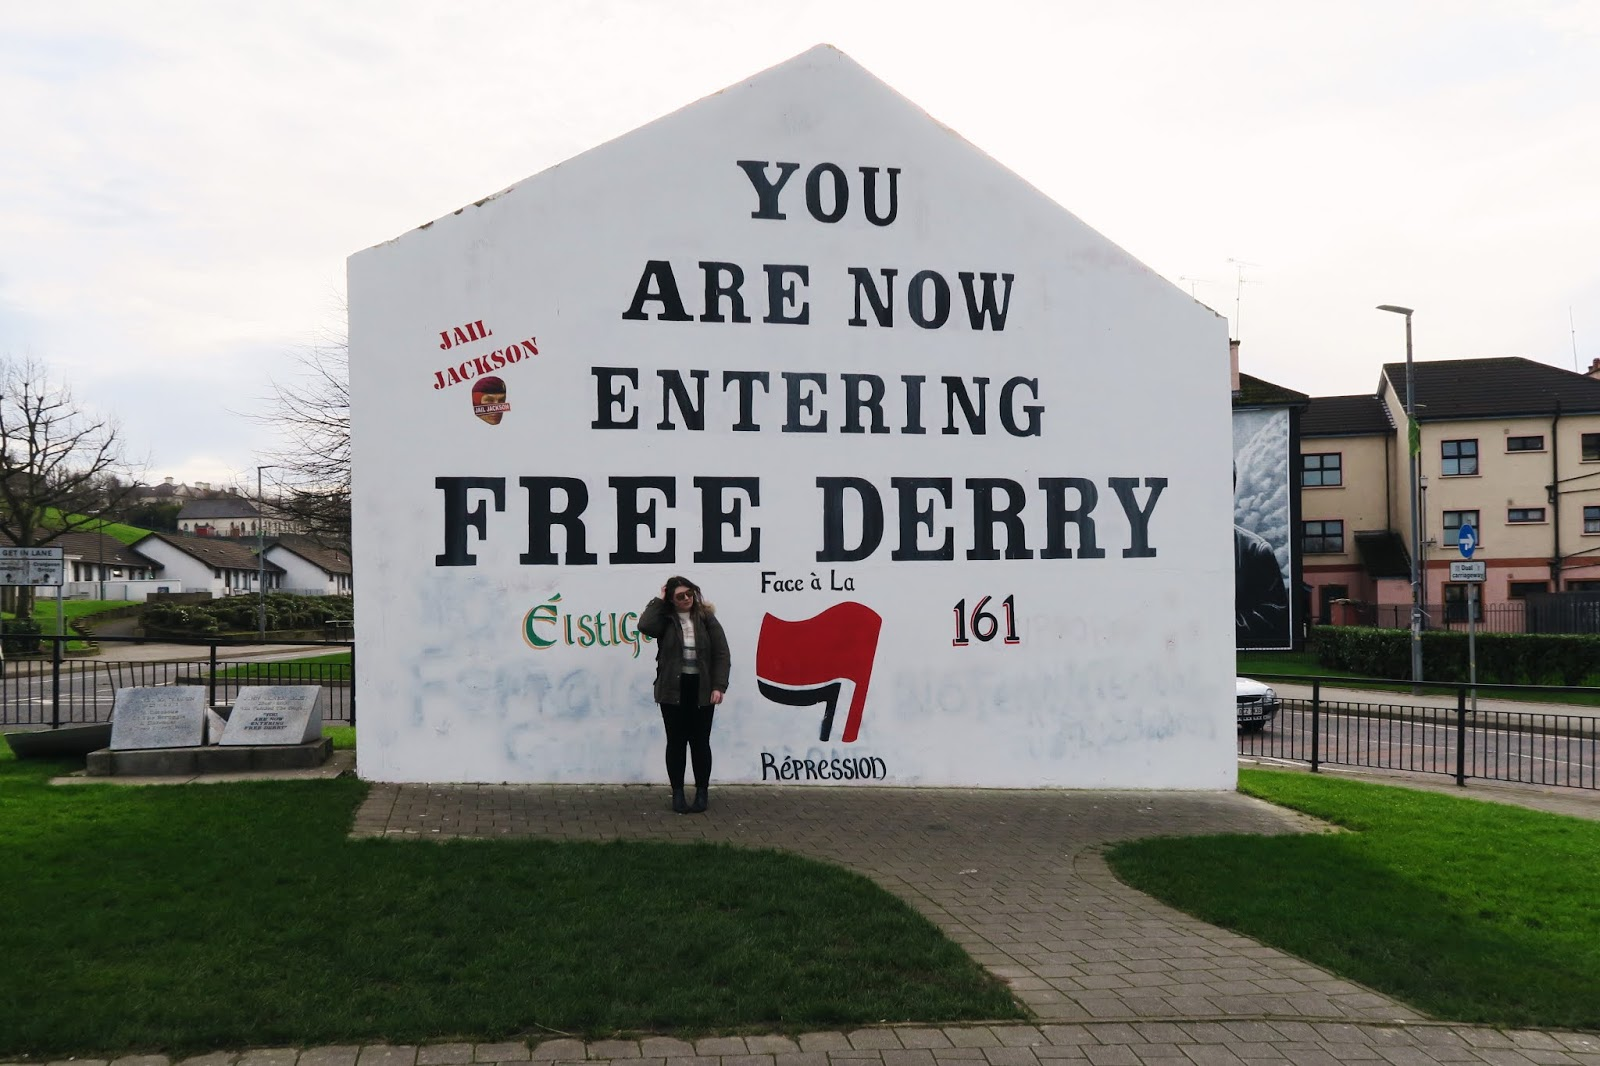 Myself standing in front of Free Derry Corner. I had to ask a strange to take this photograph as I was travelling solo